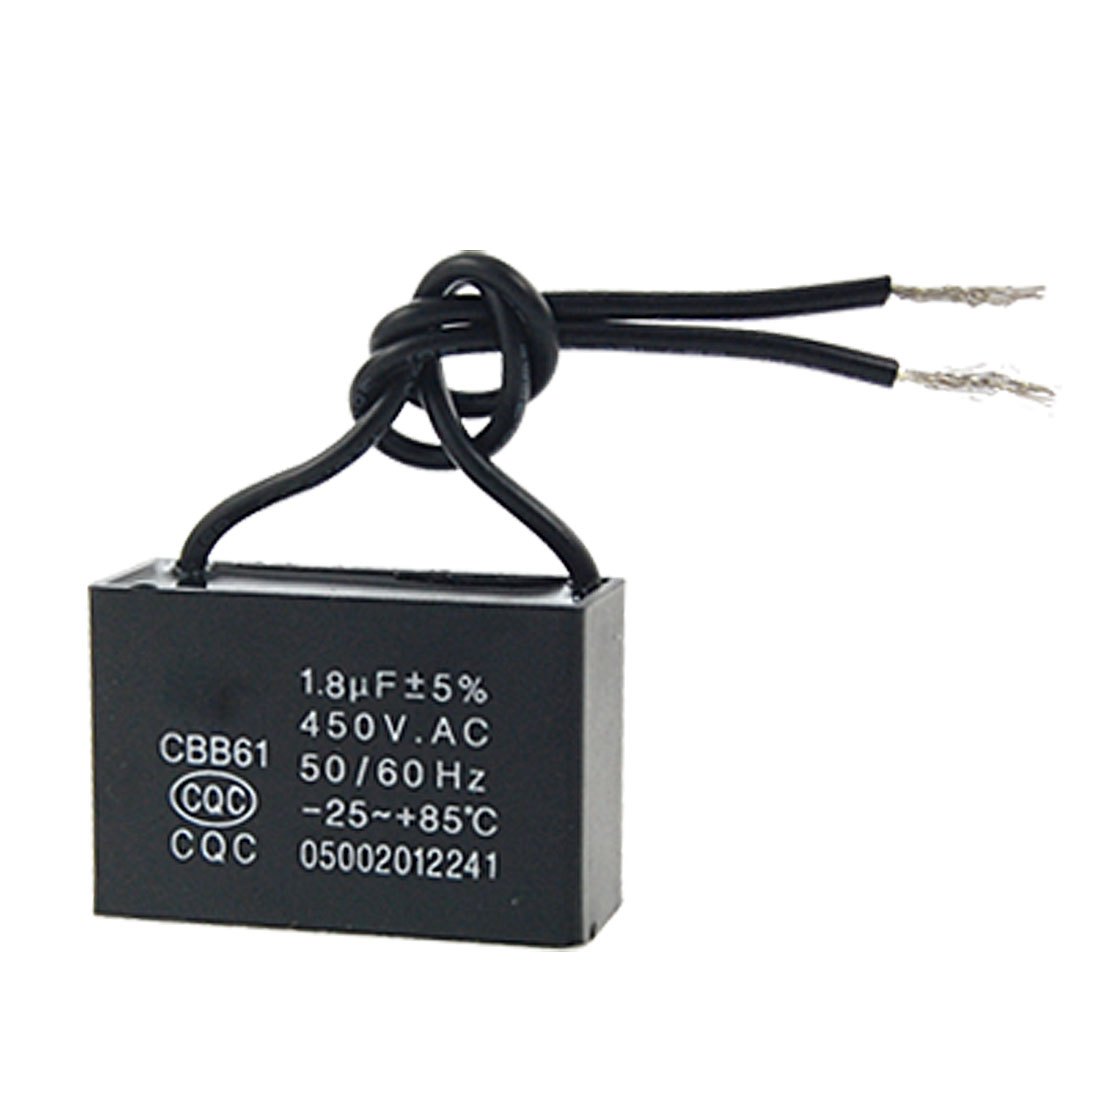 Unique Bargains Ceiling Fan Ehuaster 1 8uf Ac450v Motor Running Capacitor Cbb61 Com